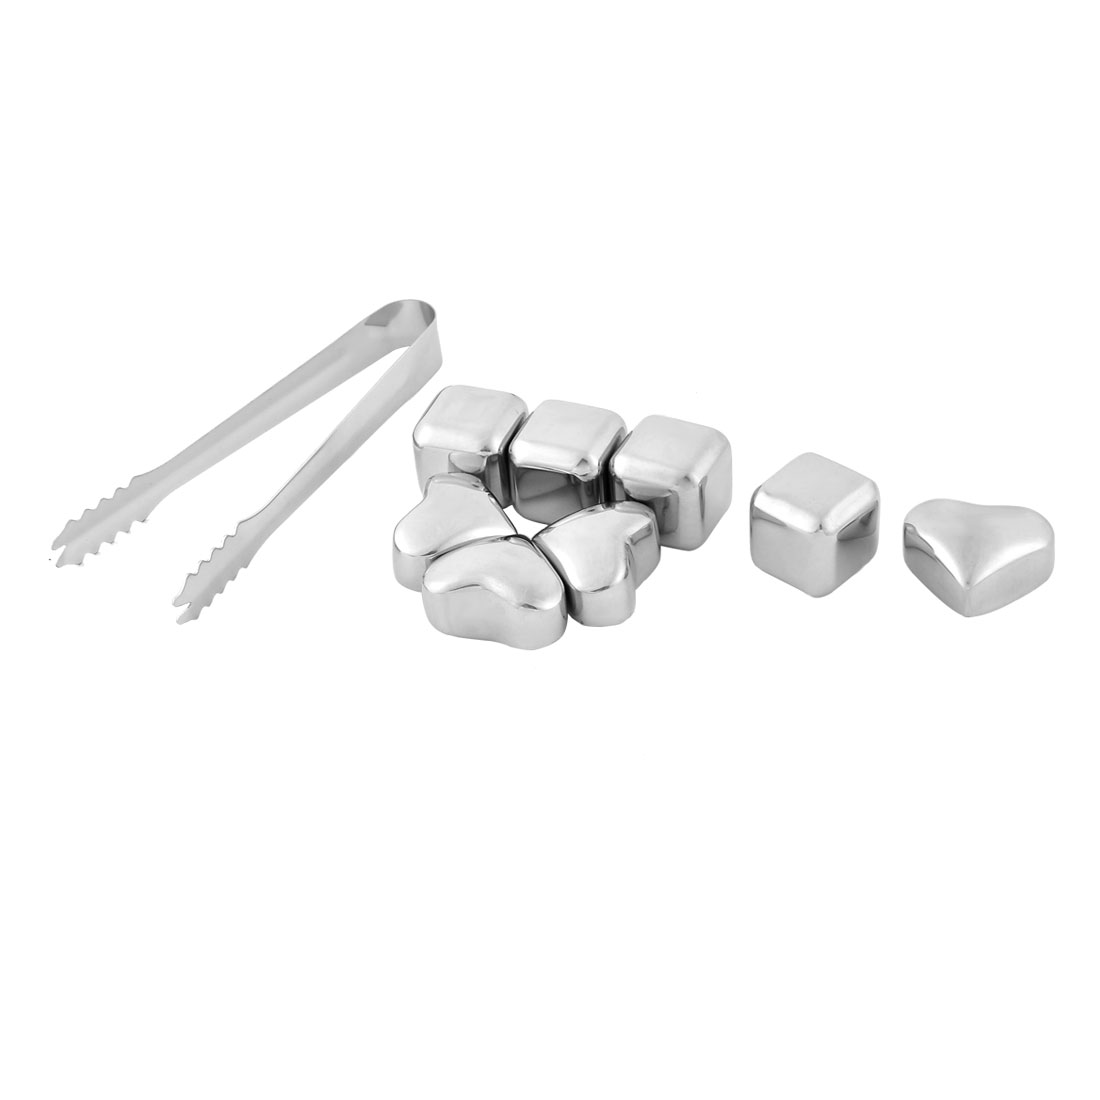 Home Stainless Steel Heart Cubic Shaped Soda Juice Ice Cube Silver Tone 9 in 1